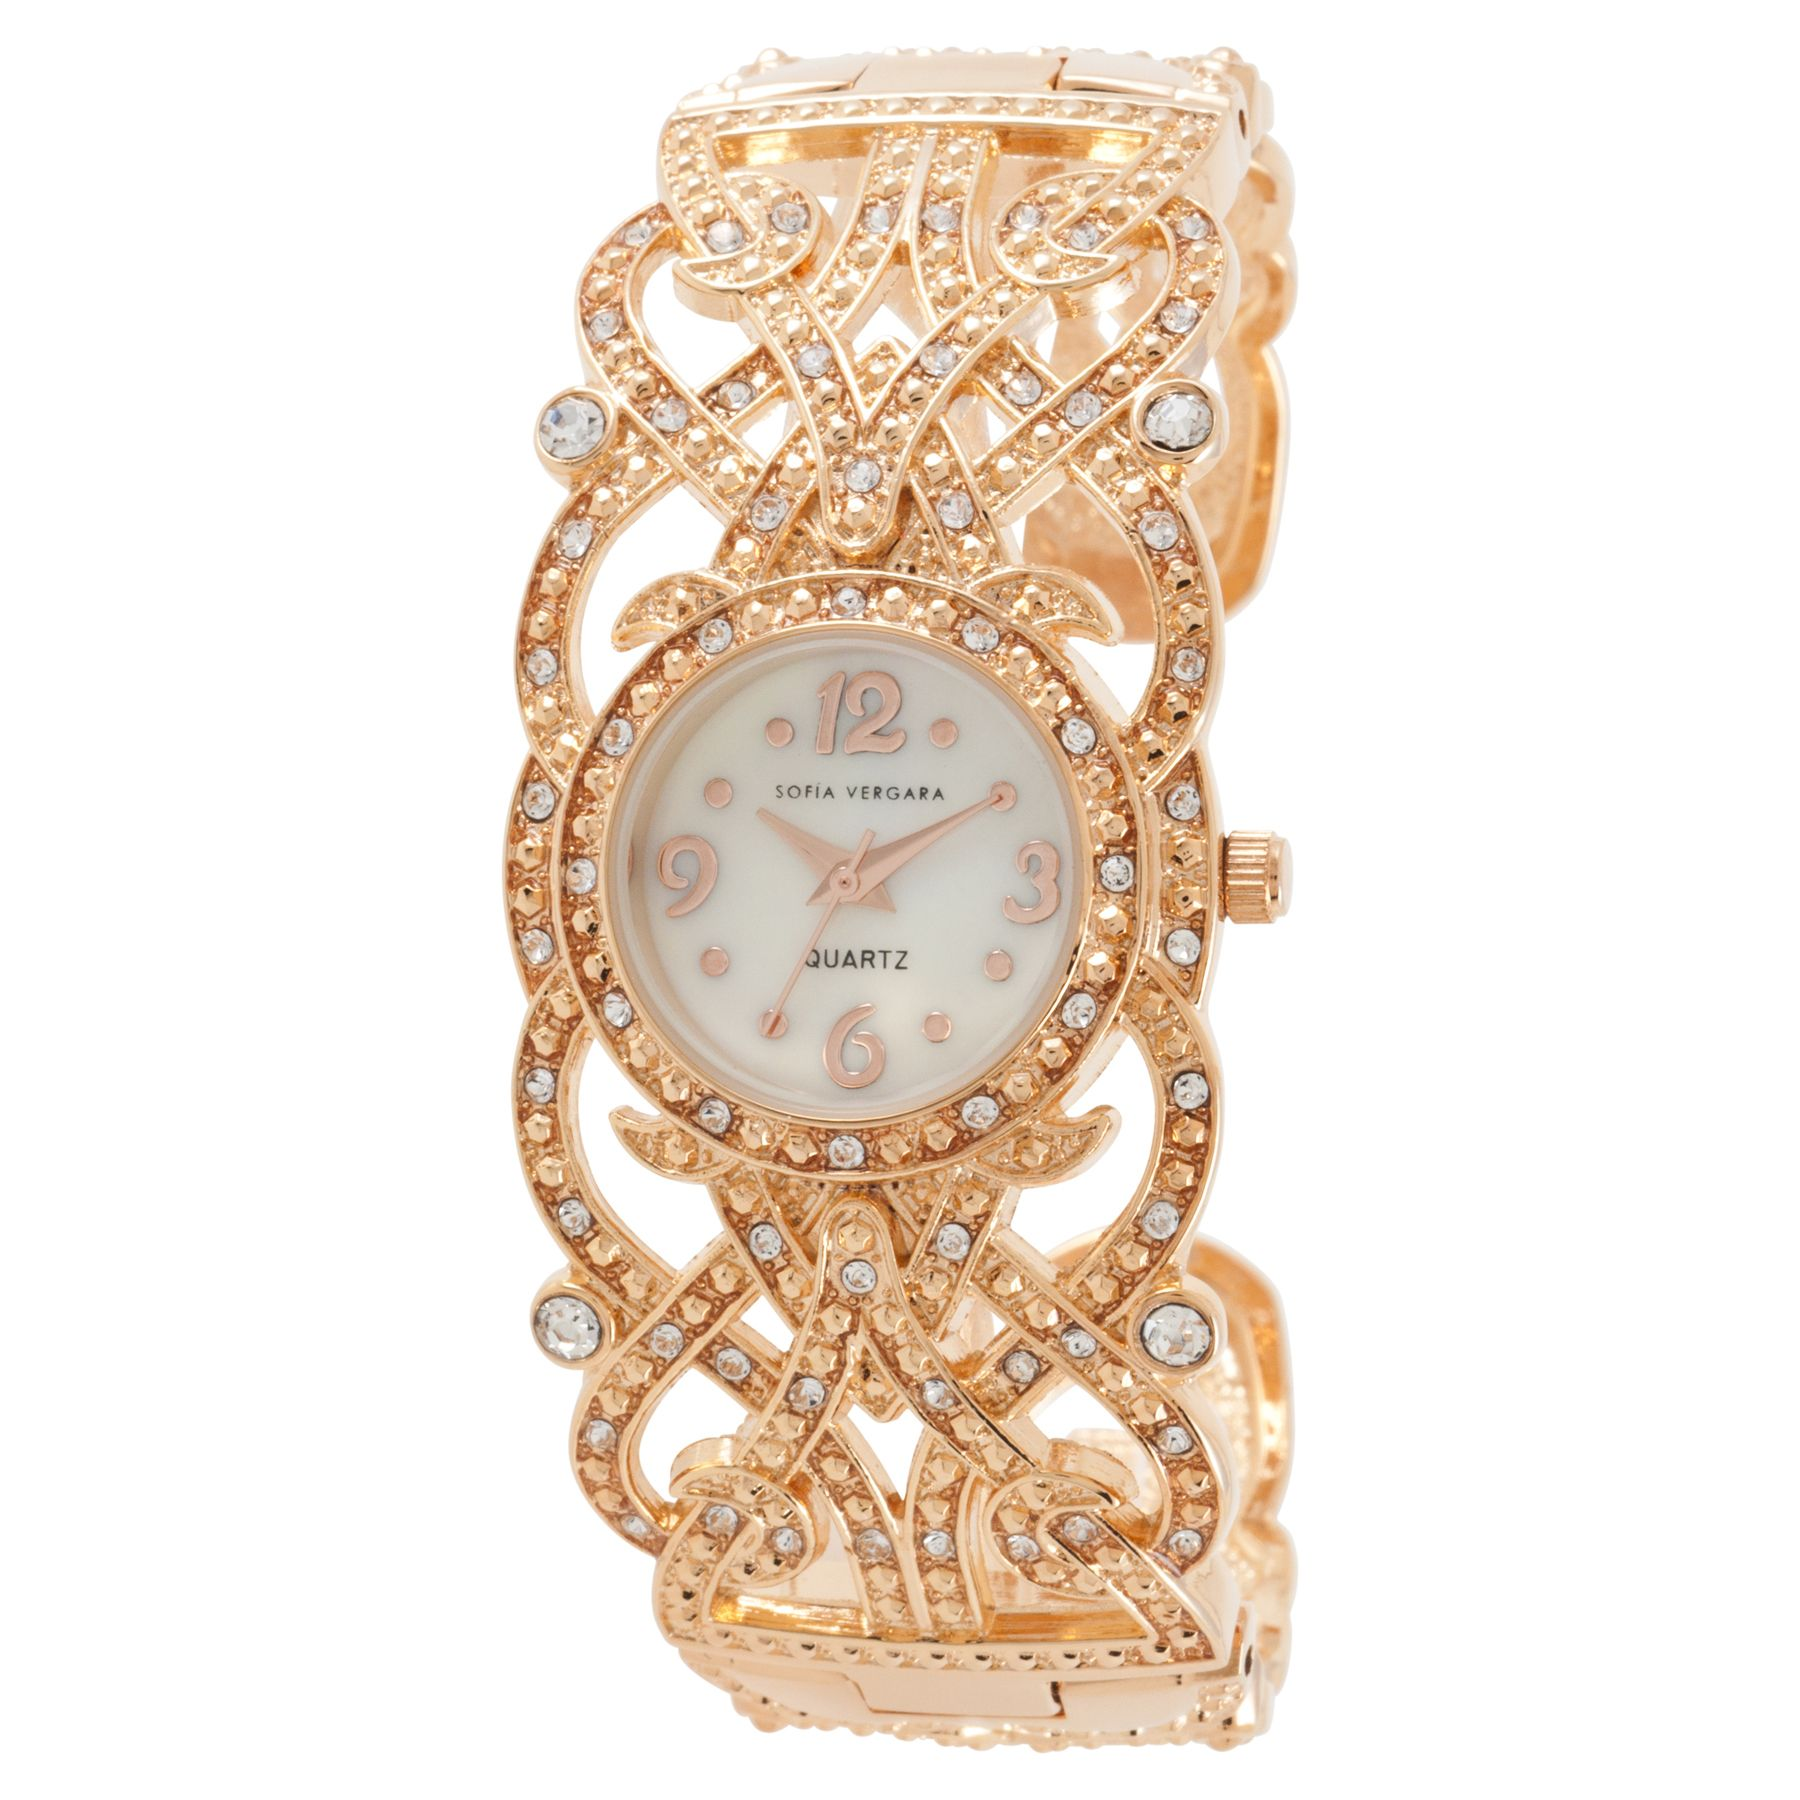 Ladies Stone Accent Watch with Round Rose Goldtone Case, Mother-of-Pearl Dial and Rose Gold Filigree Bracelet Band               at mygofer.com